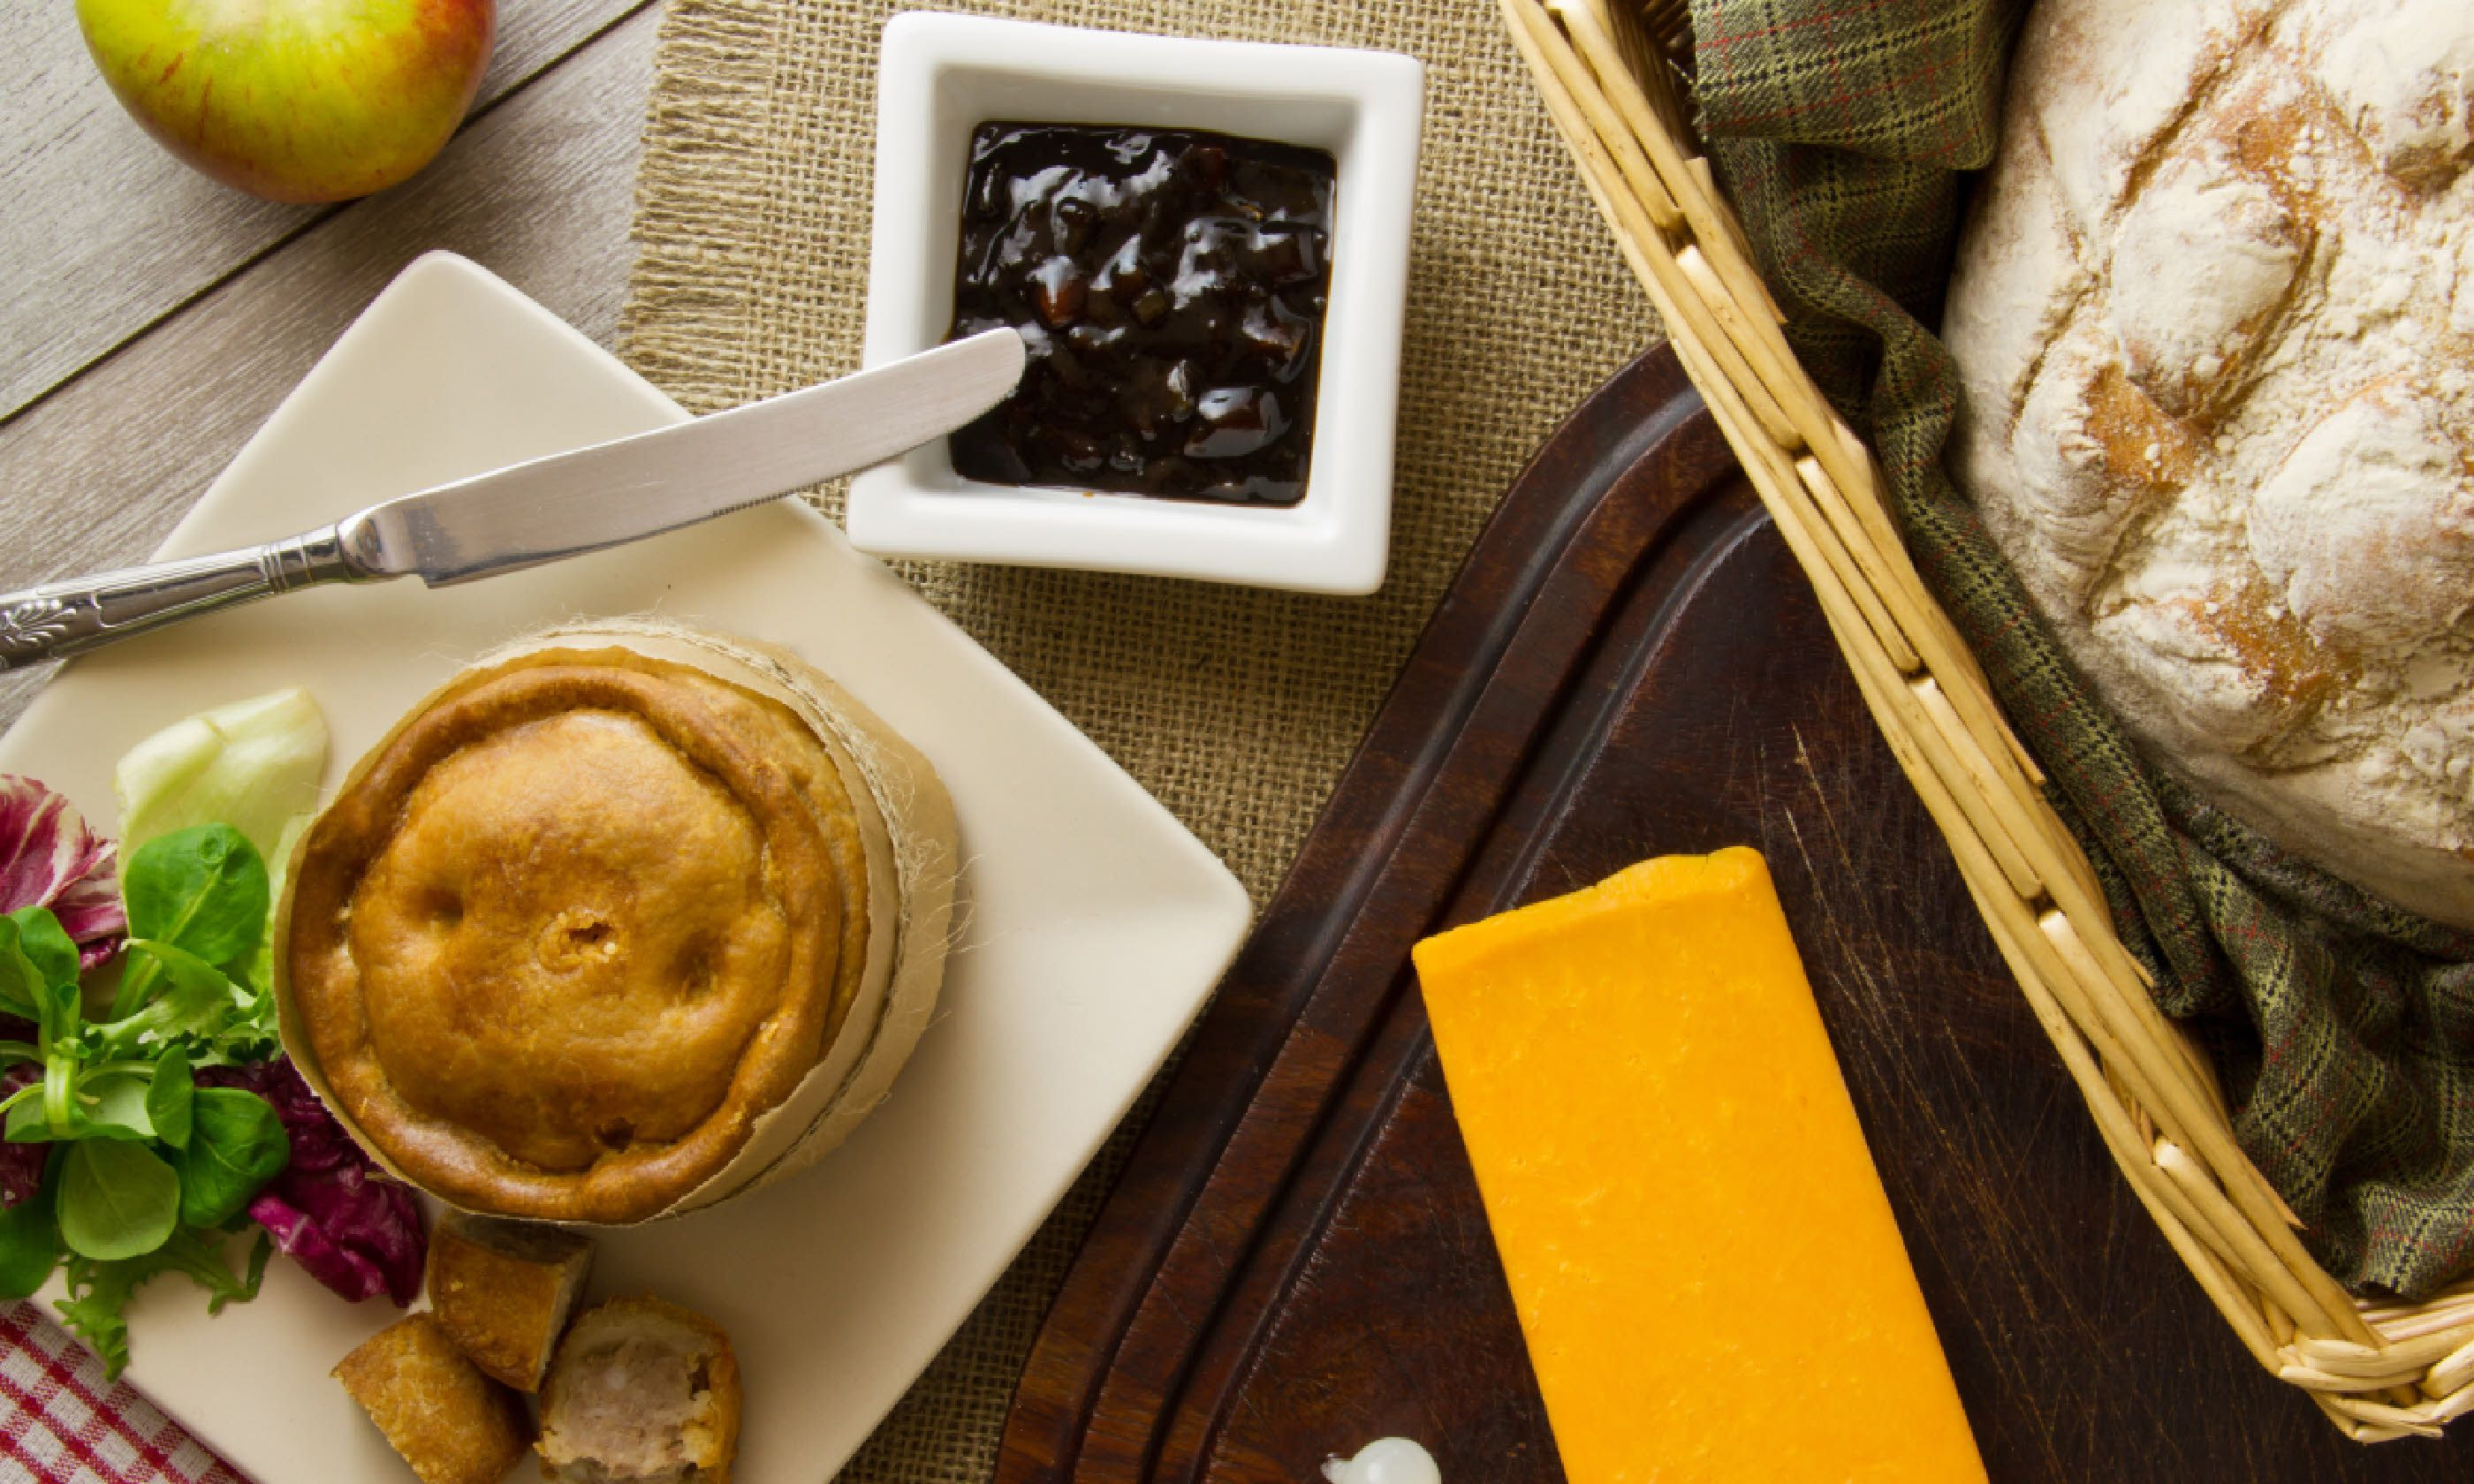 Ploughman's lunch with Melton Mowbray pie (Shutterstock)